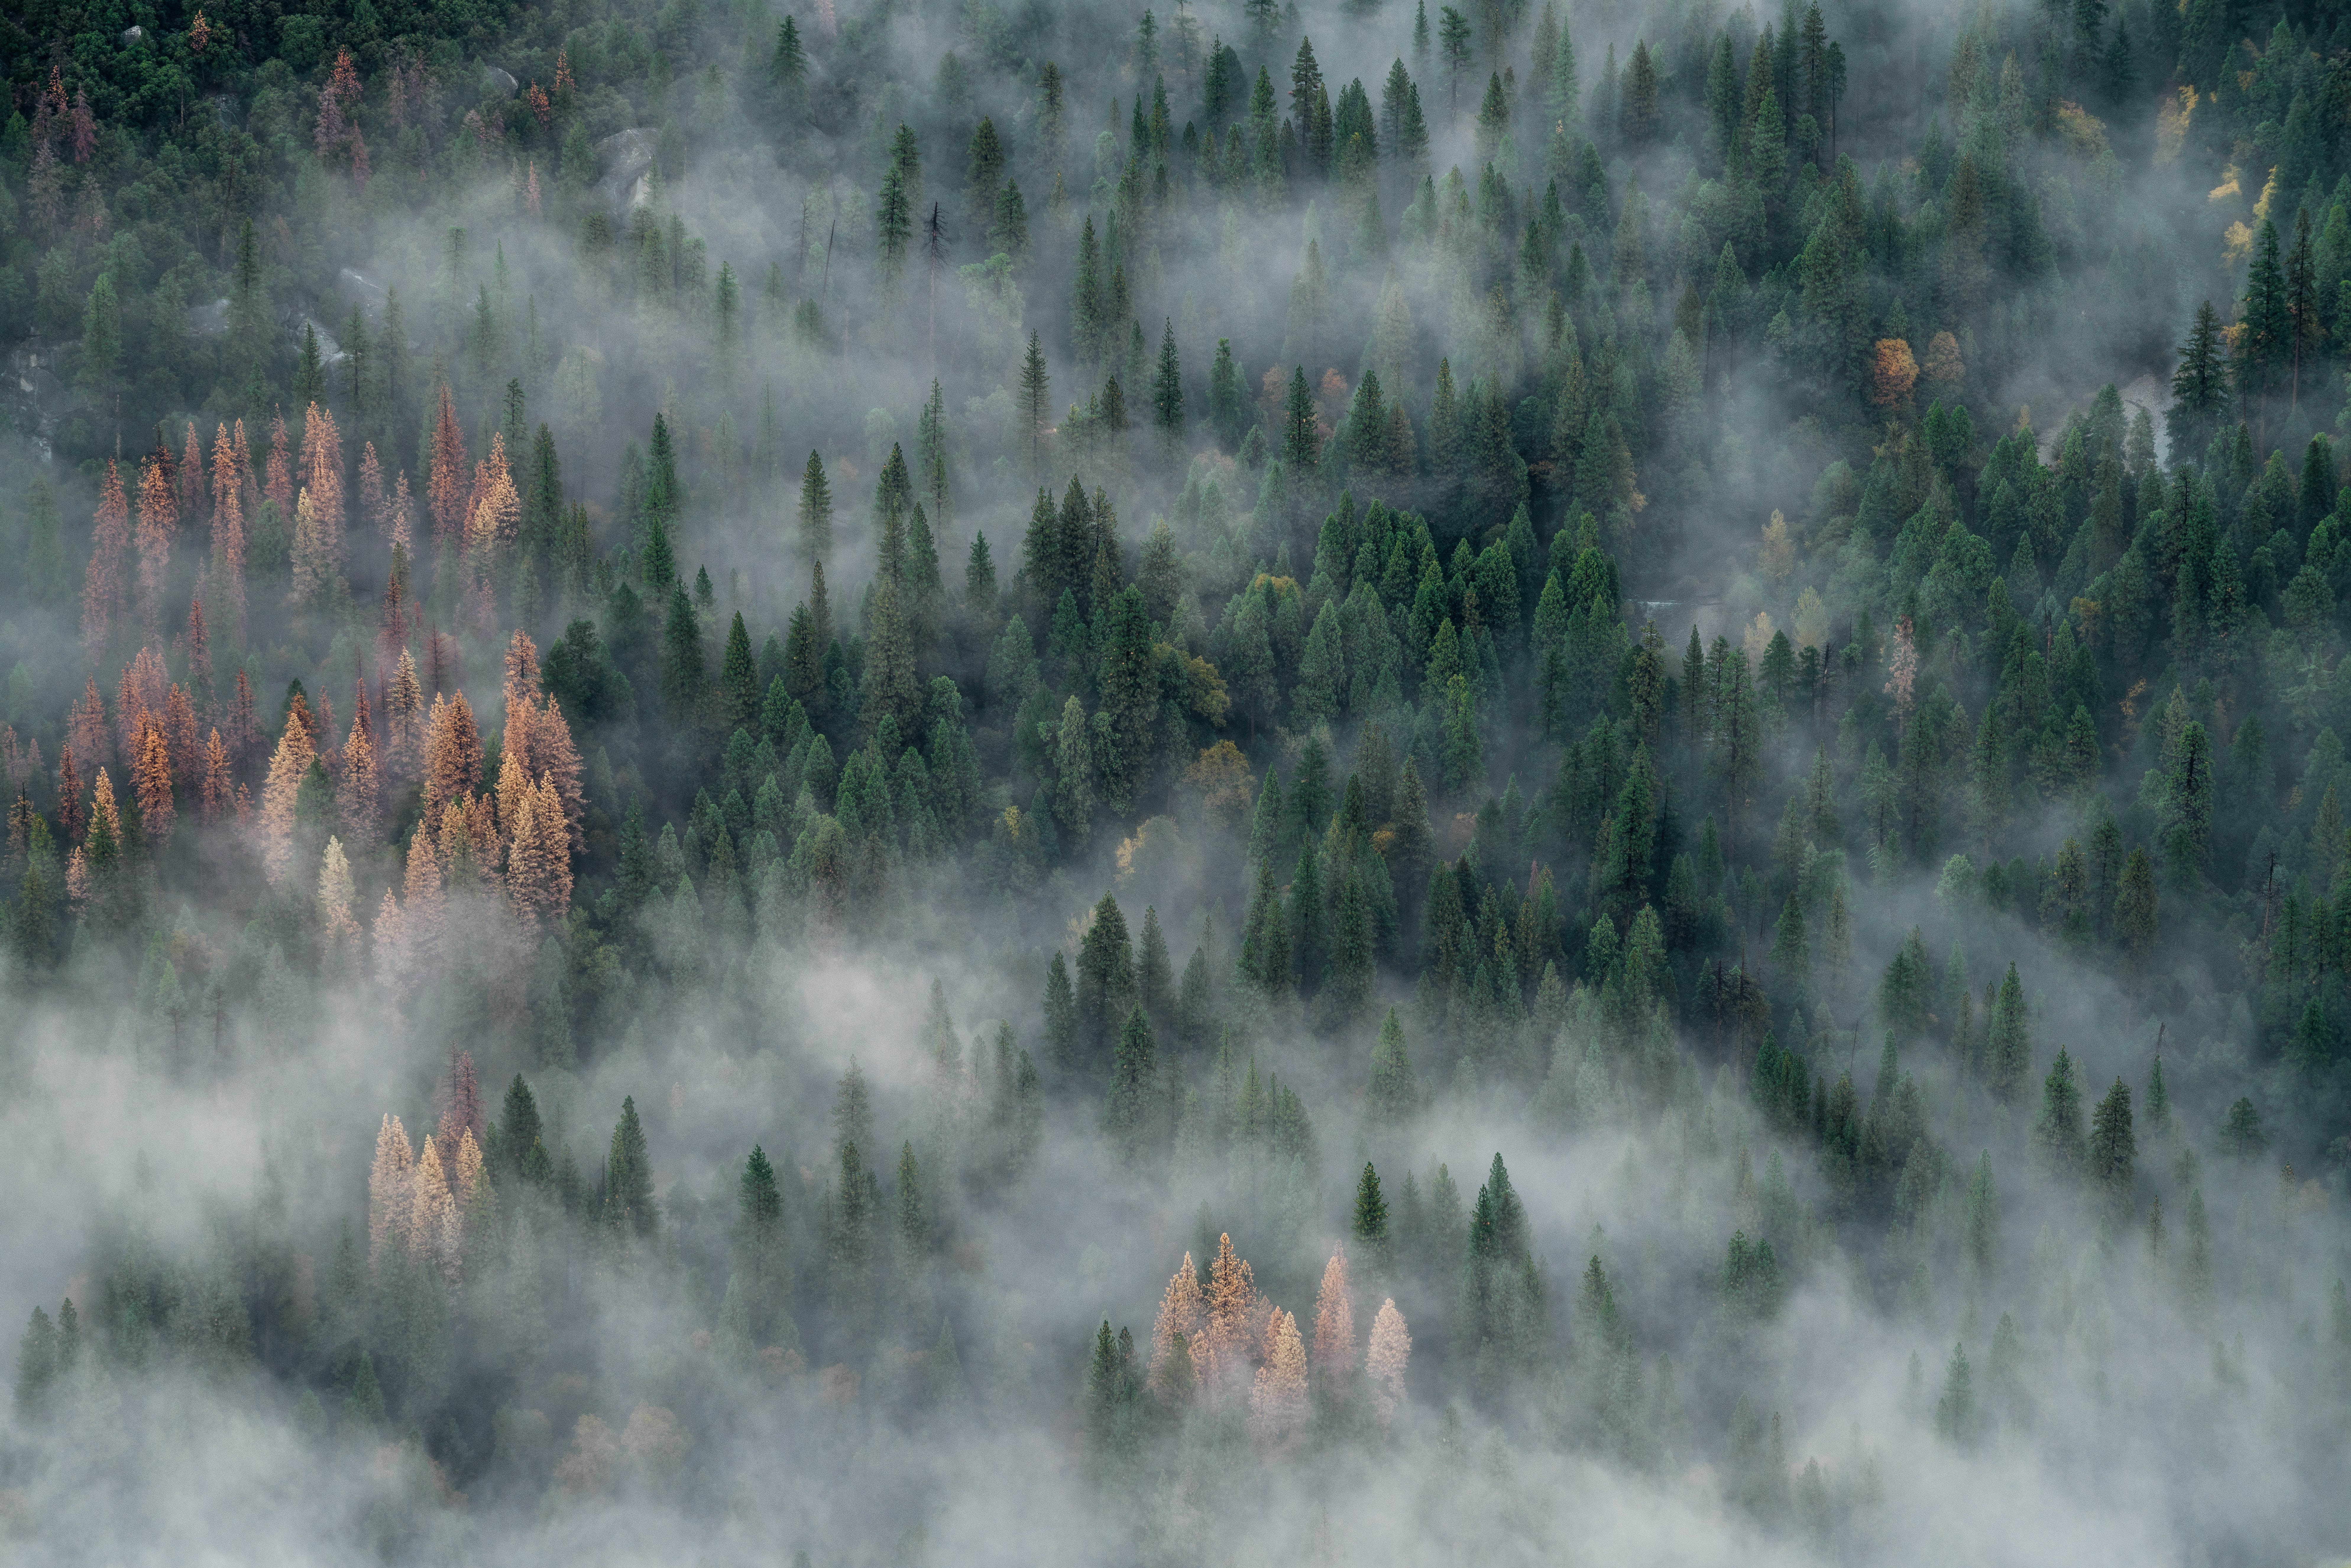 A drone shot of a coniferous forest shrouded in mist in Yosemite Valley